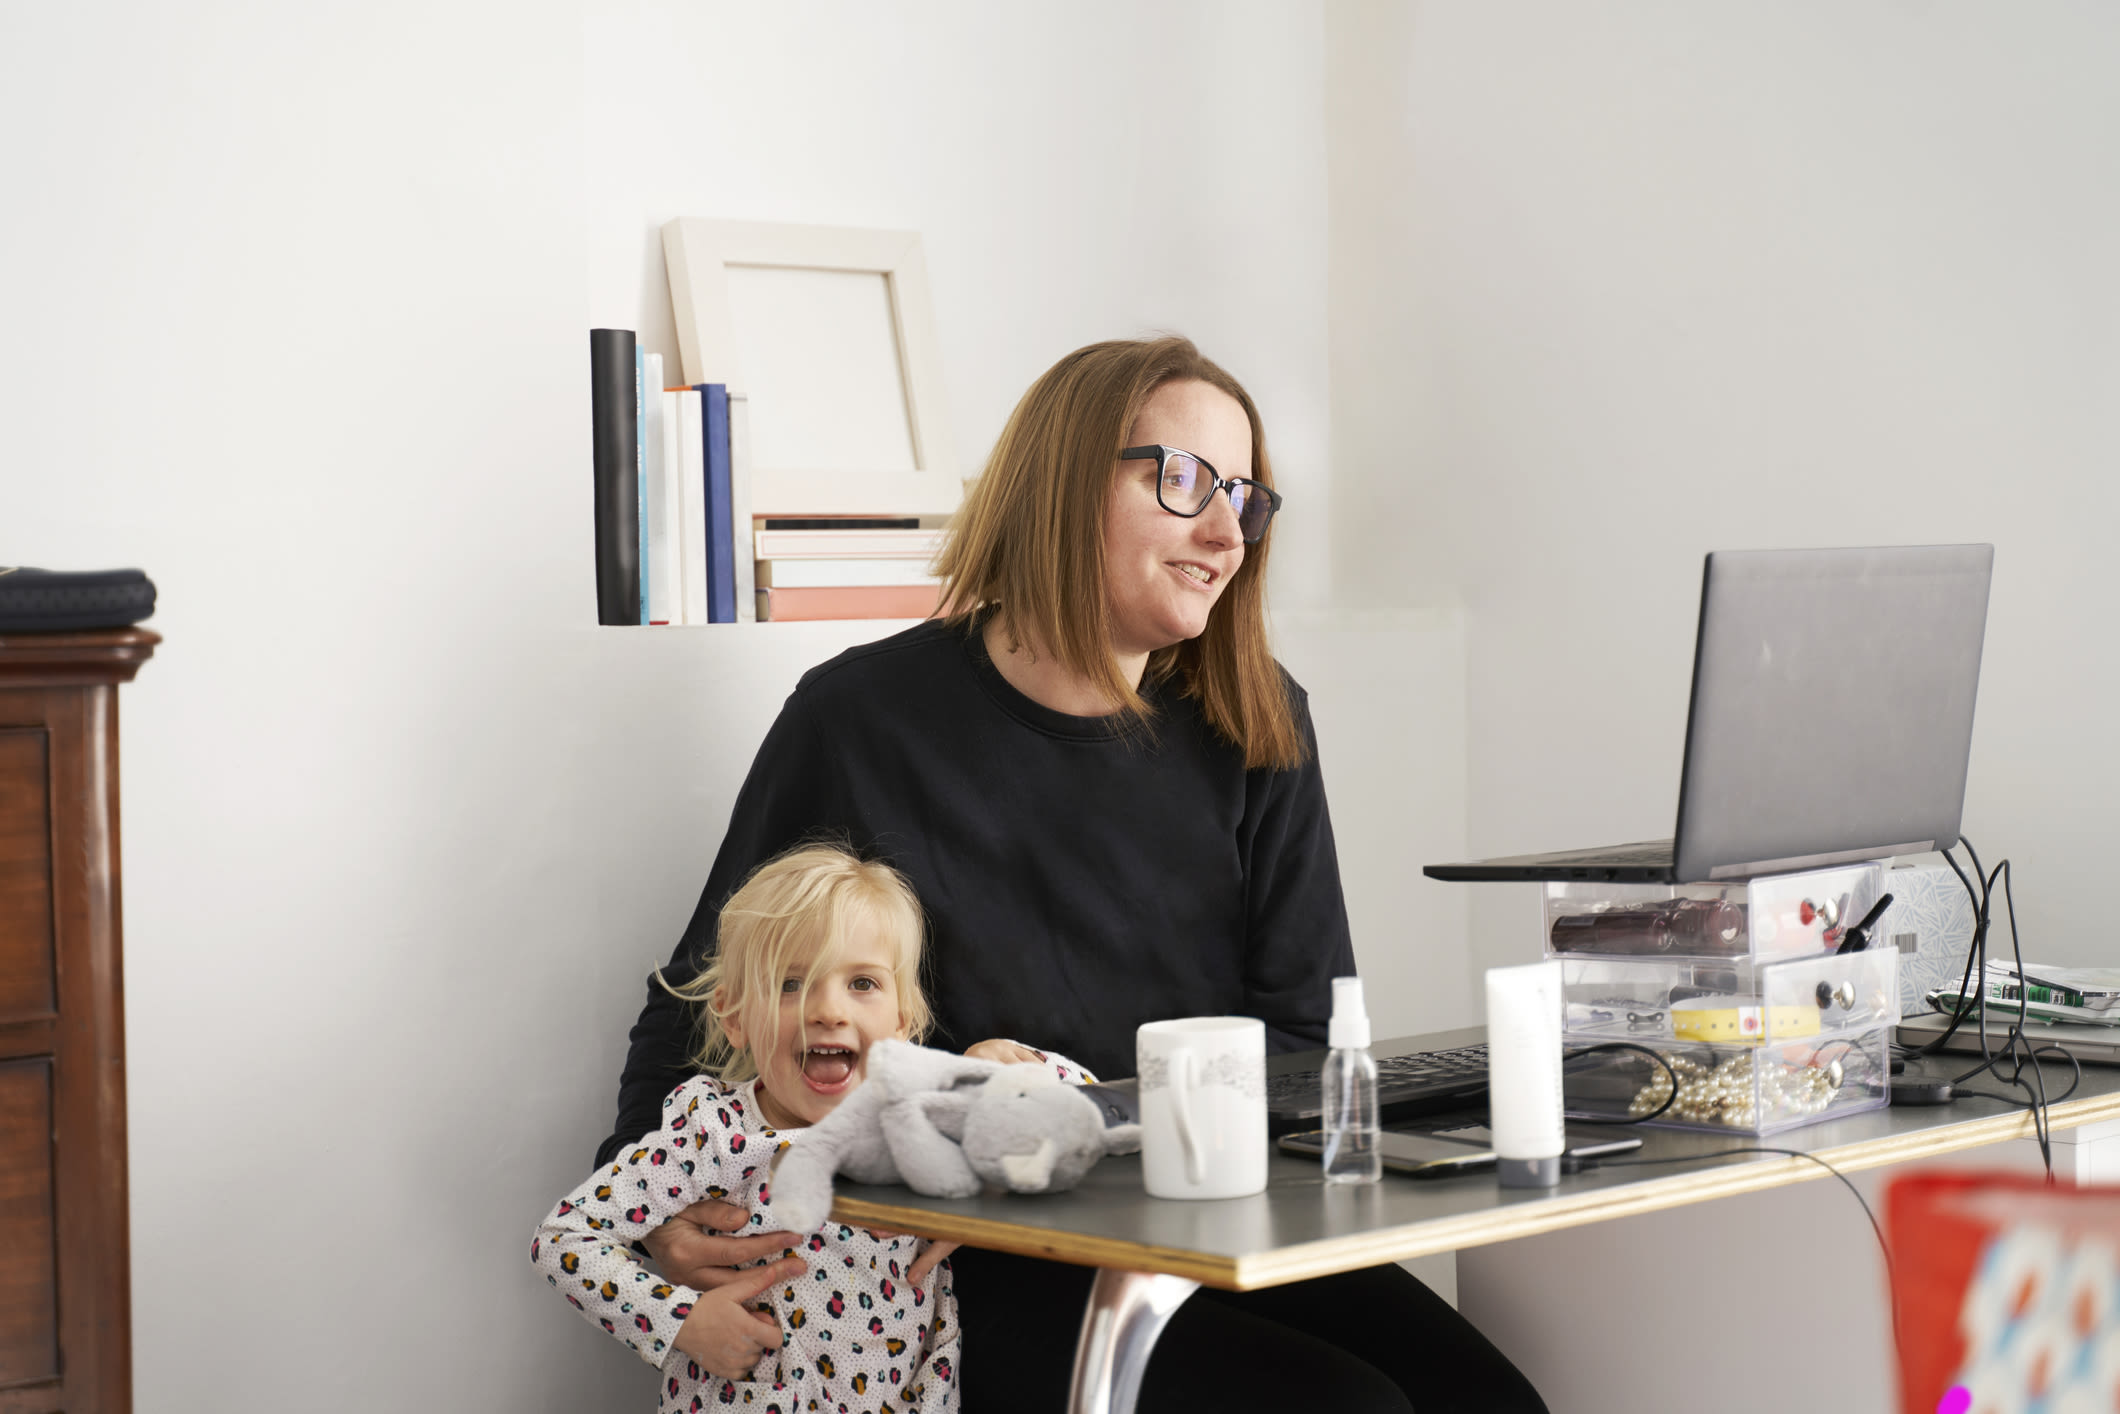 A woman working from home with a child